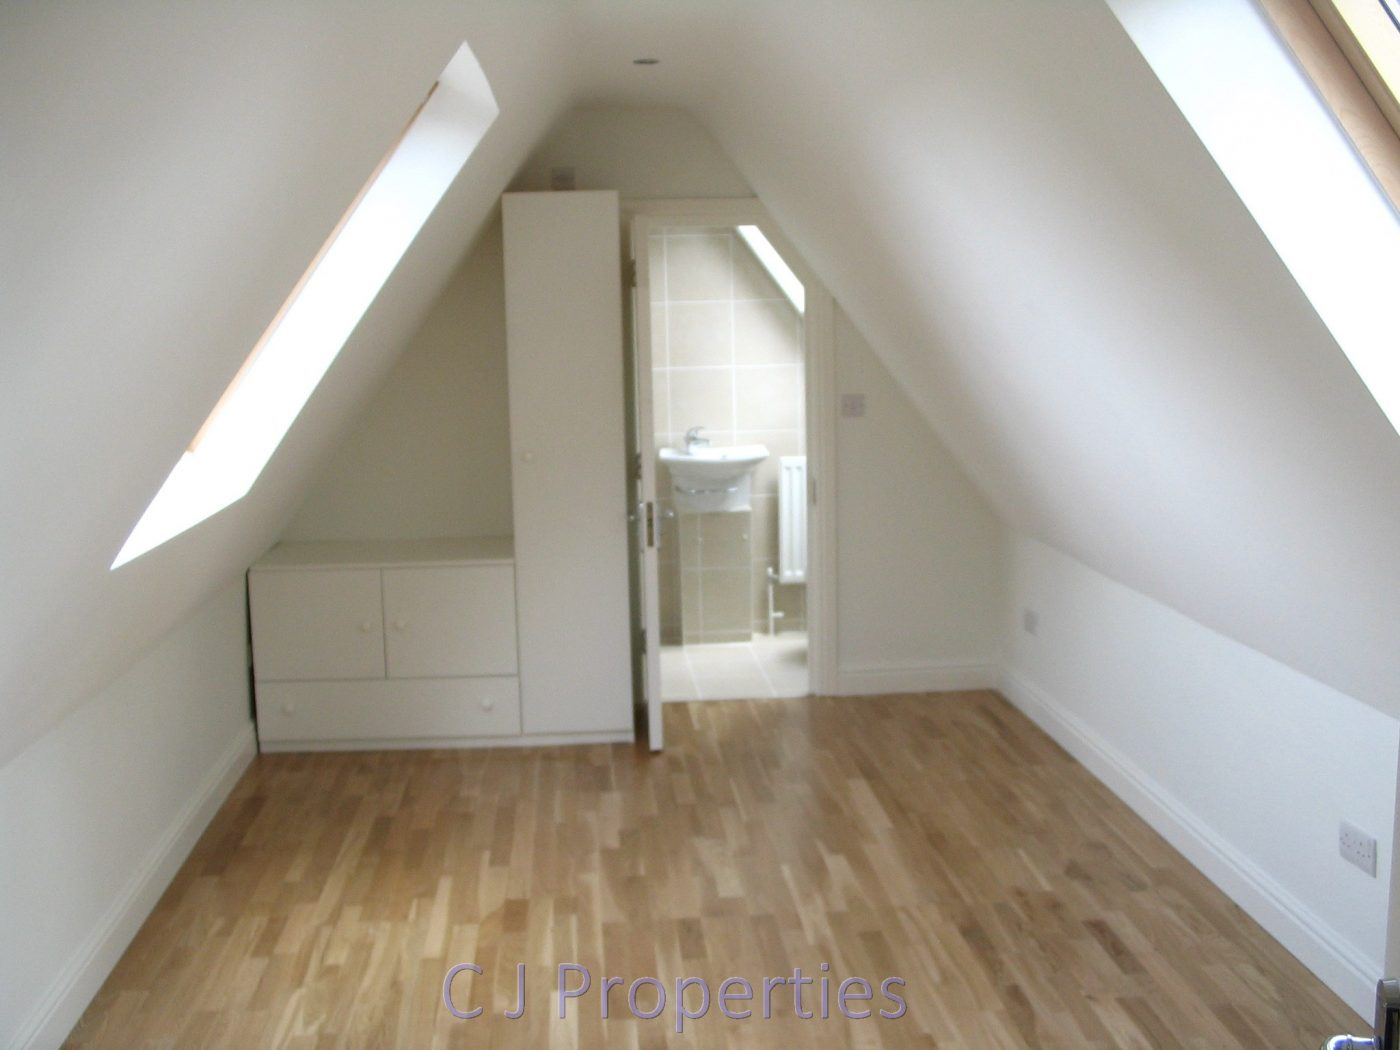 Finchley Road, NW11 - 2 Bedroom Flat